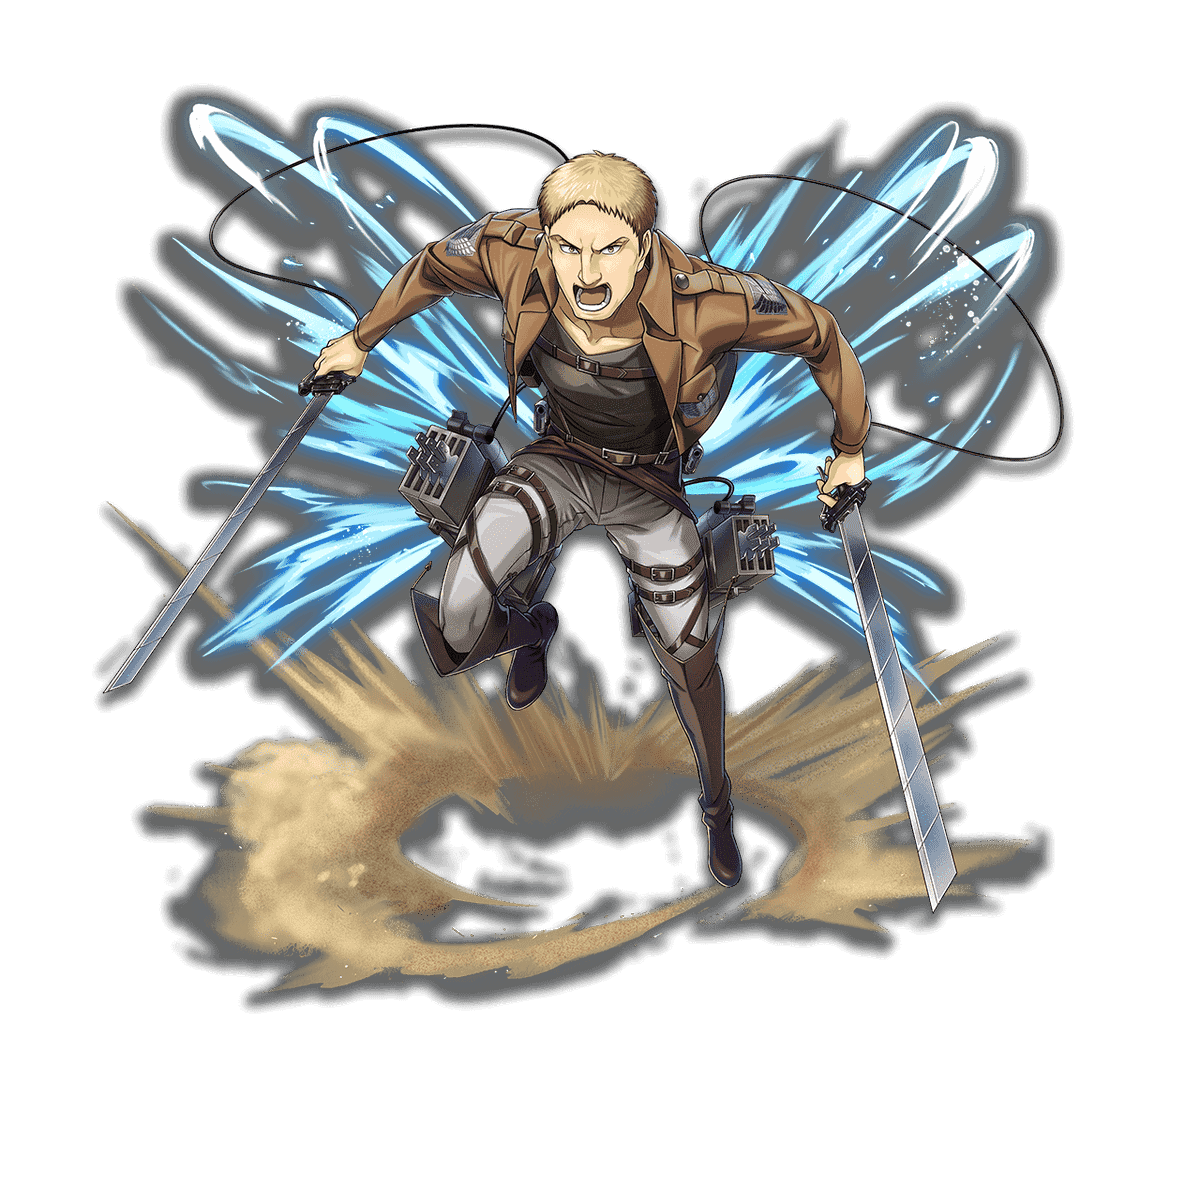 Attack On Titan Wiki On Twitter Attack On Titan X Othellonia Collaboration Reiner Bertolt Annie And Ymir Character Image